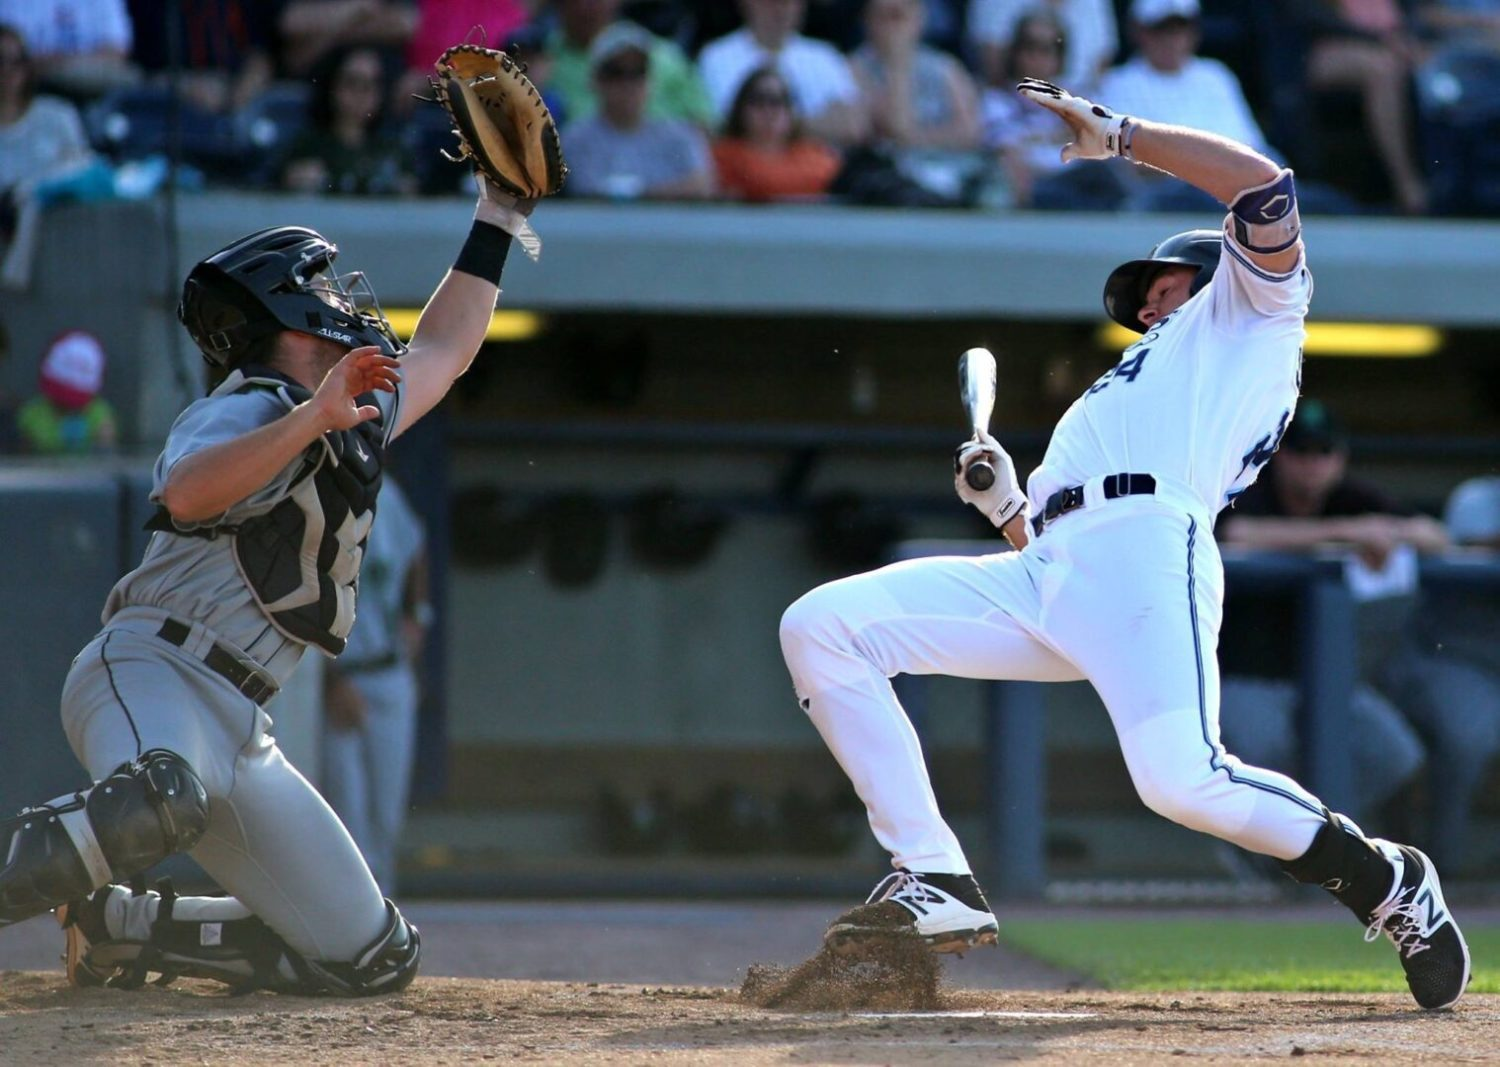 Blaise Salter's gappers, RBIs helped the Whitecaps roll to a first-half championship